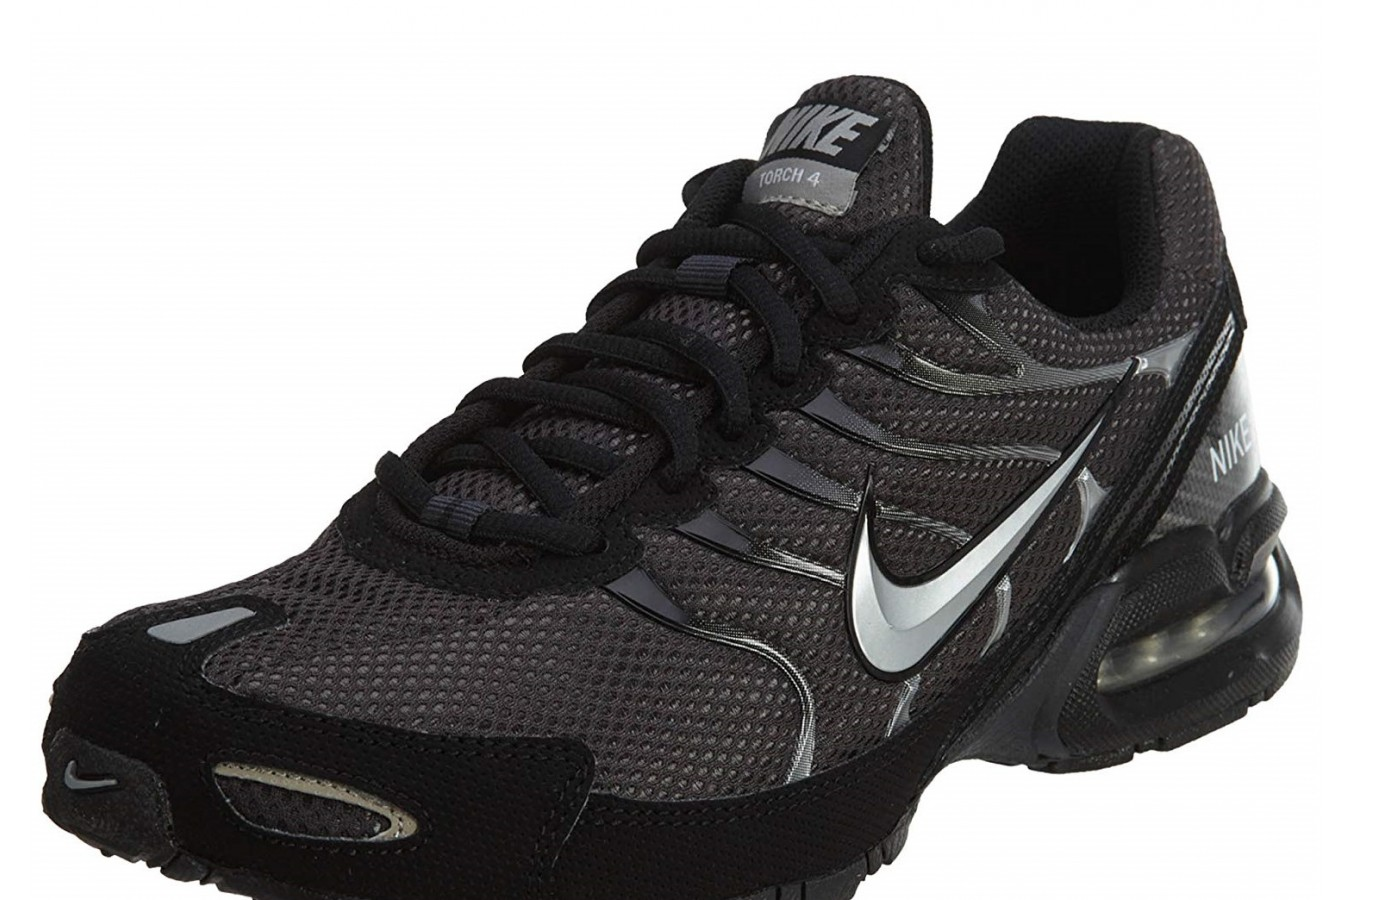 2f86a911bf Nike Air Max Torch 4: To Buy or Not in 2019 | TheGearHunt